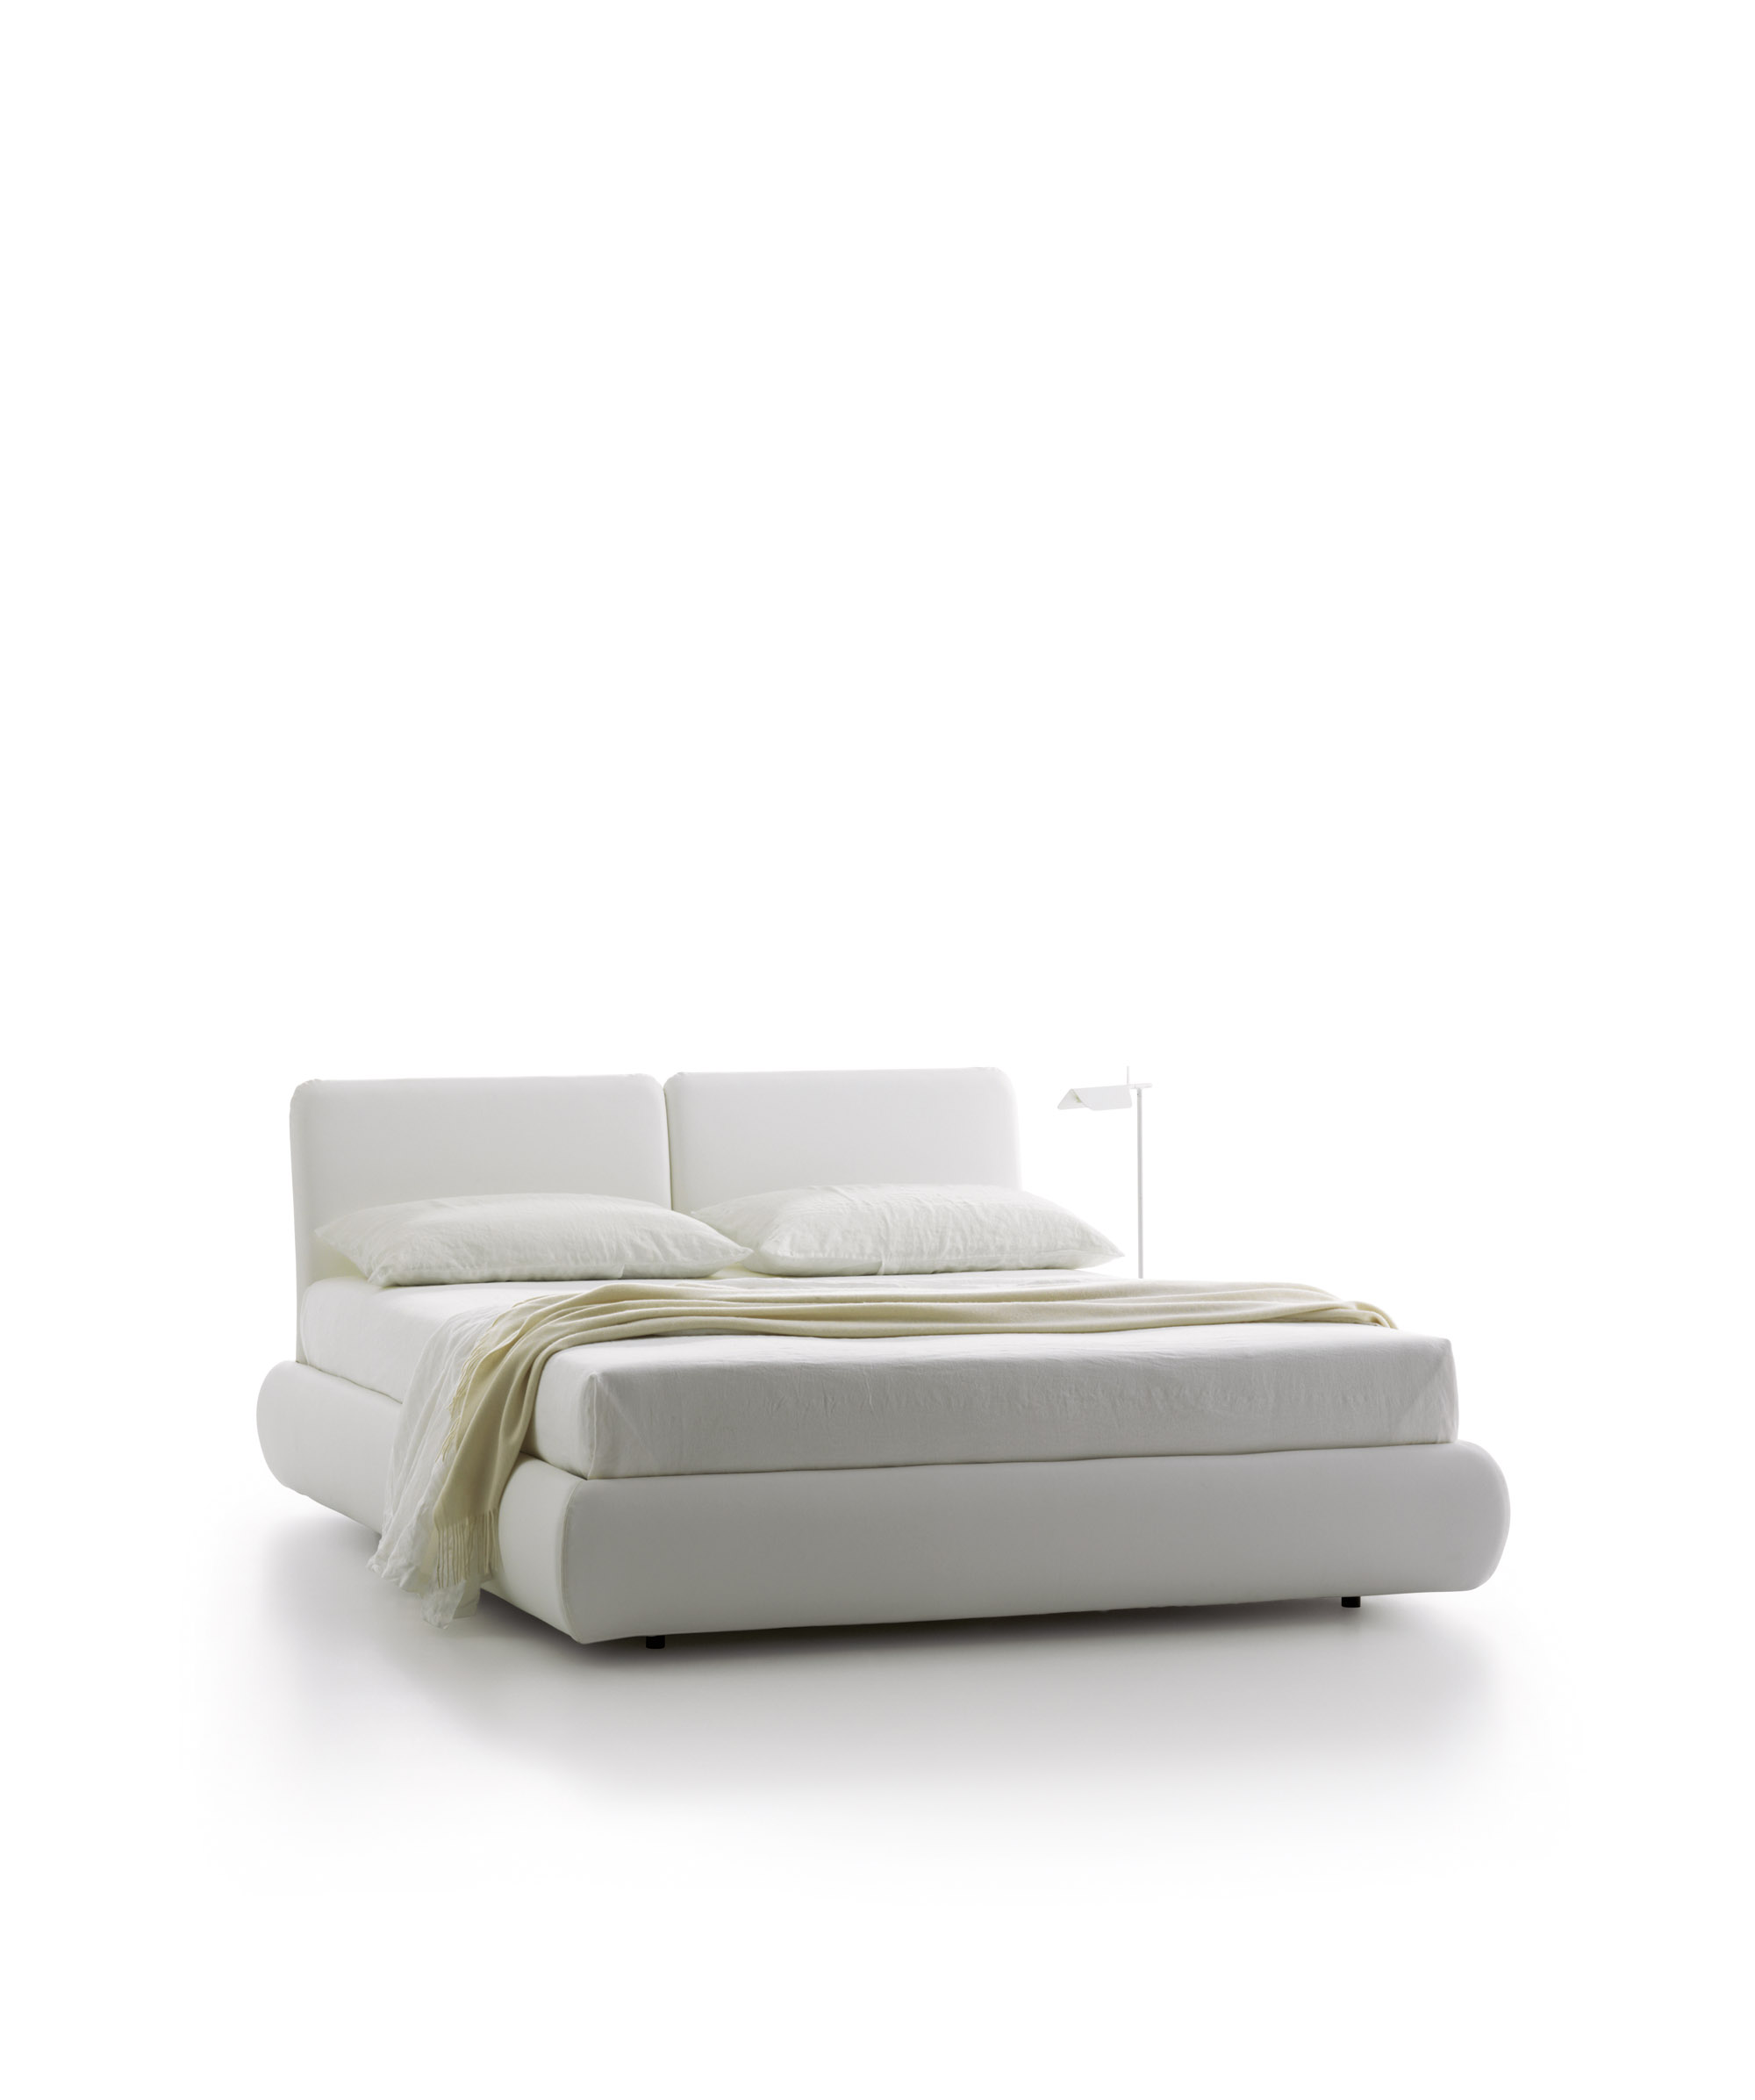 Il Decor Boston Bambo Classic Bed By Sangiacomo Italy